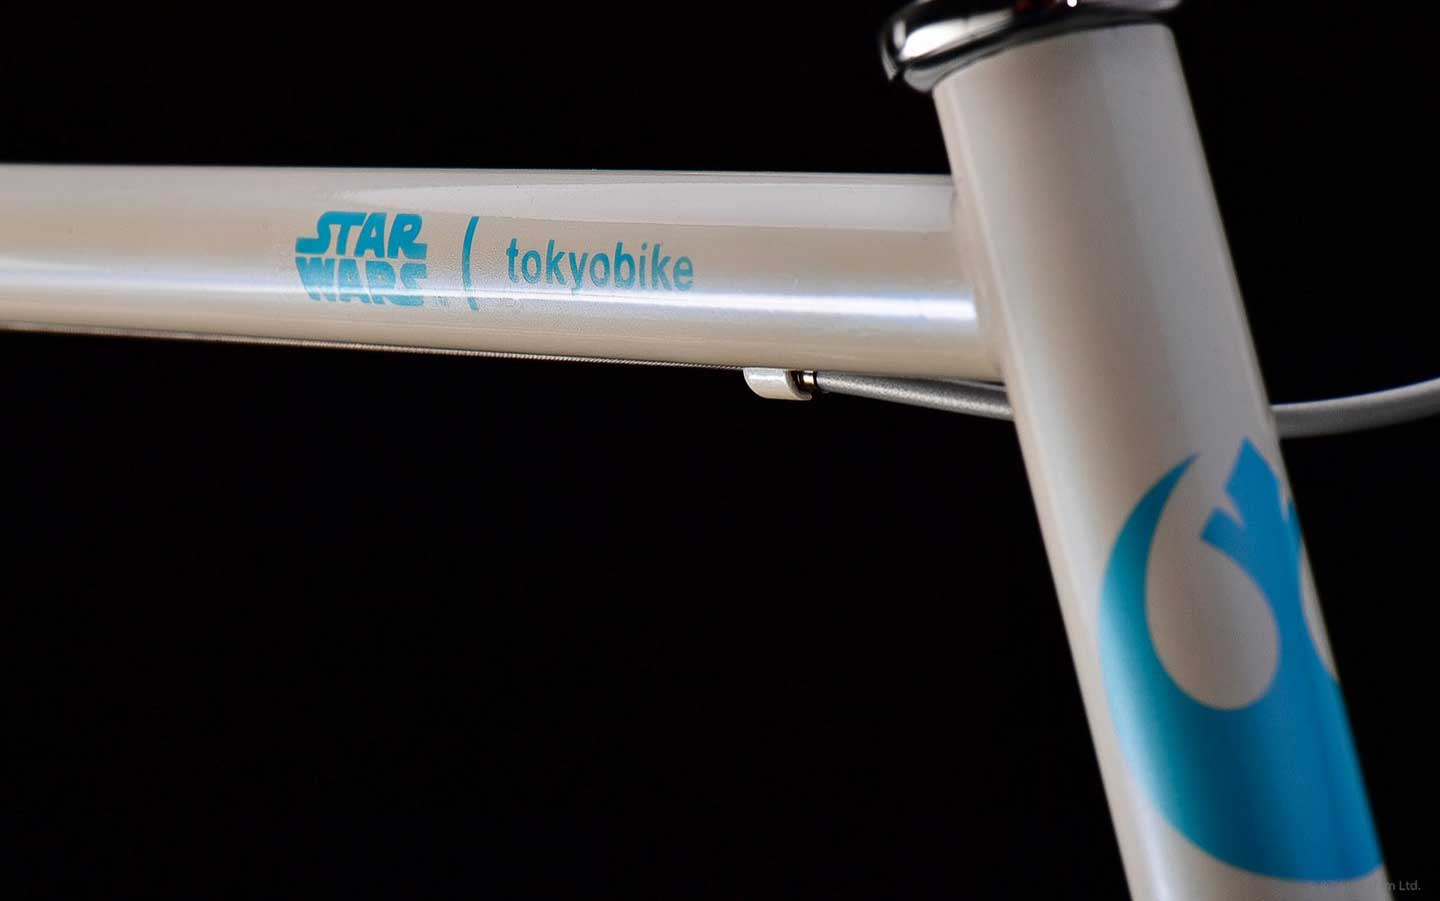 STAR WARS x tokyobike Rey - logo on frame